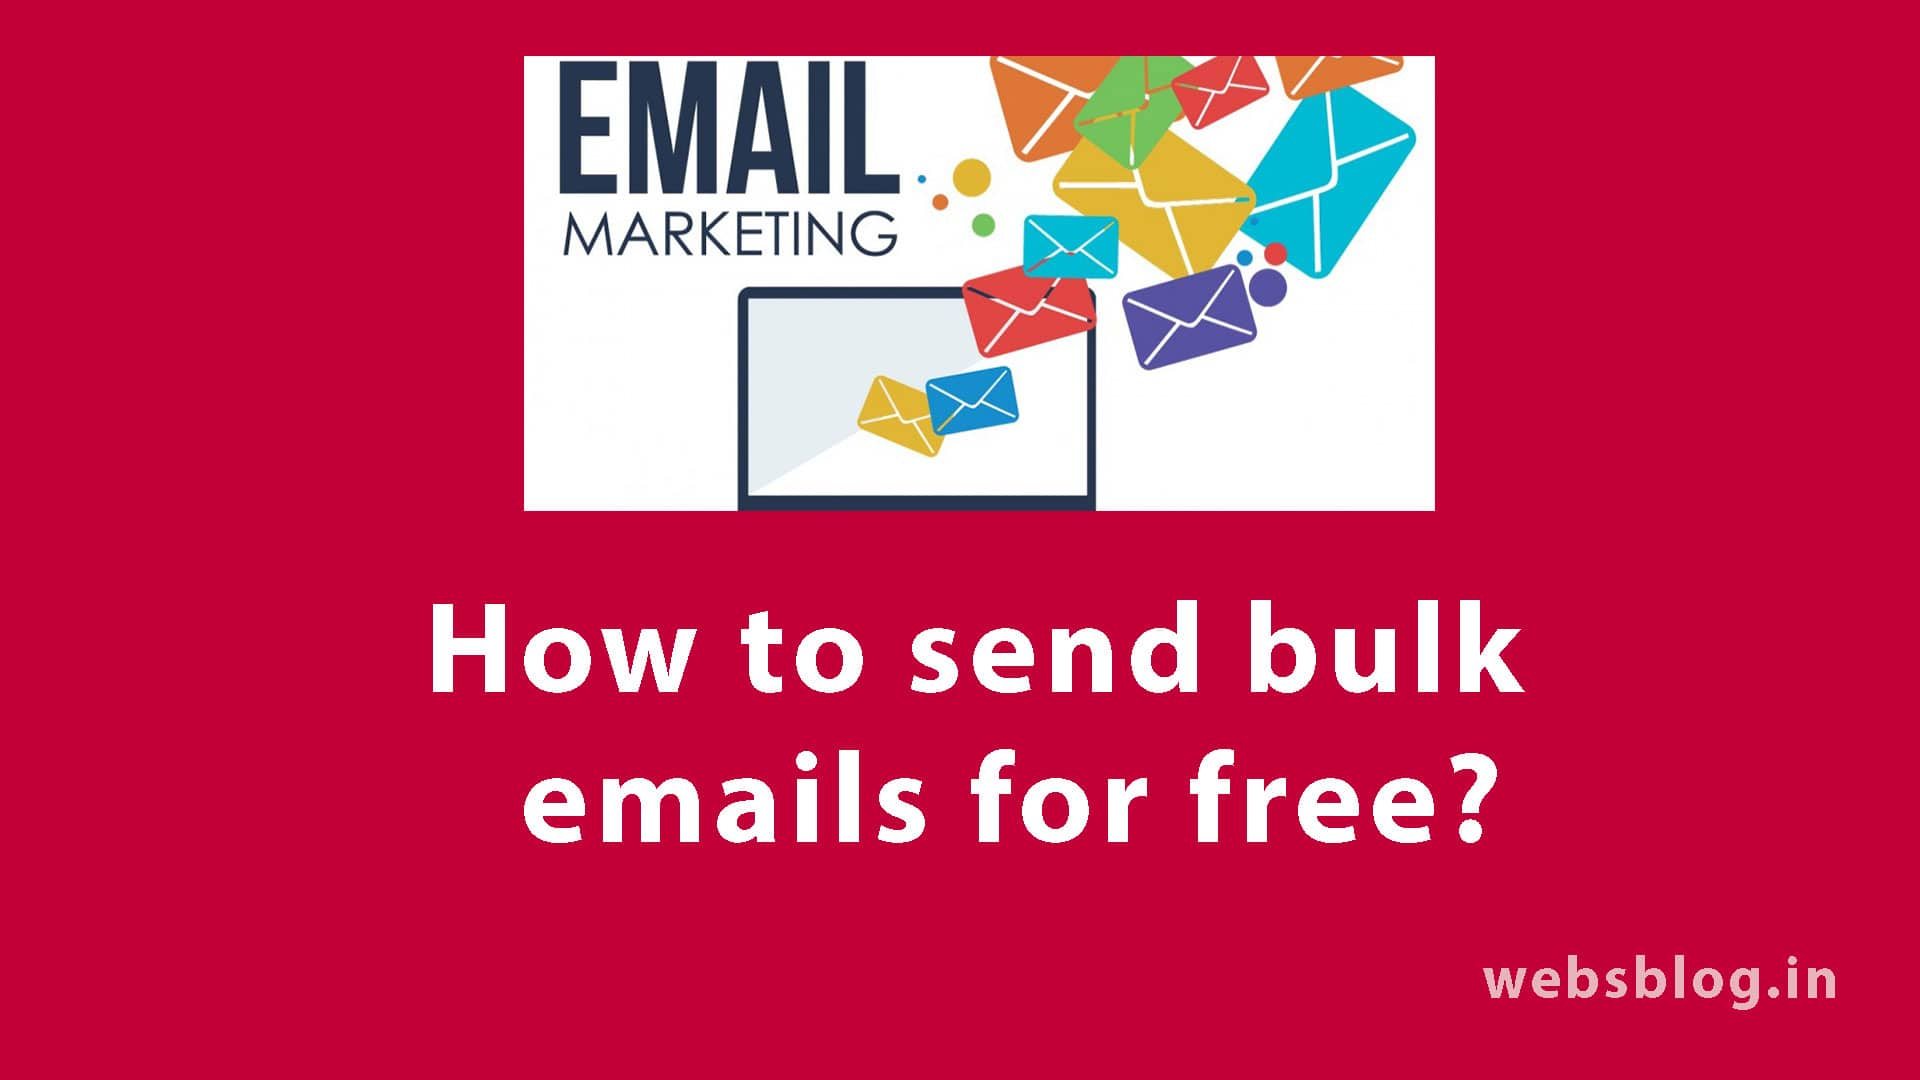 How to send bulk emails for free?